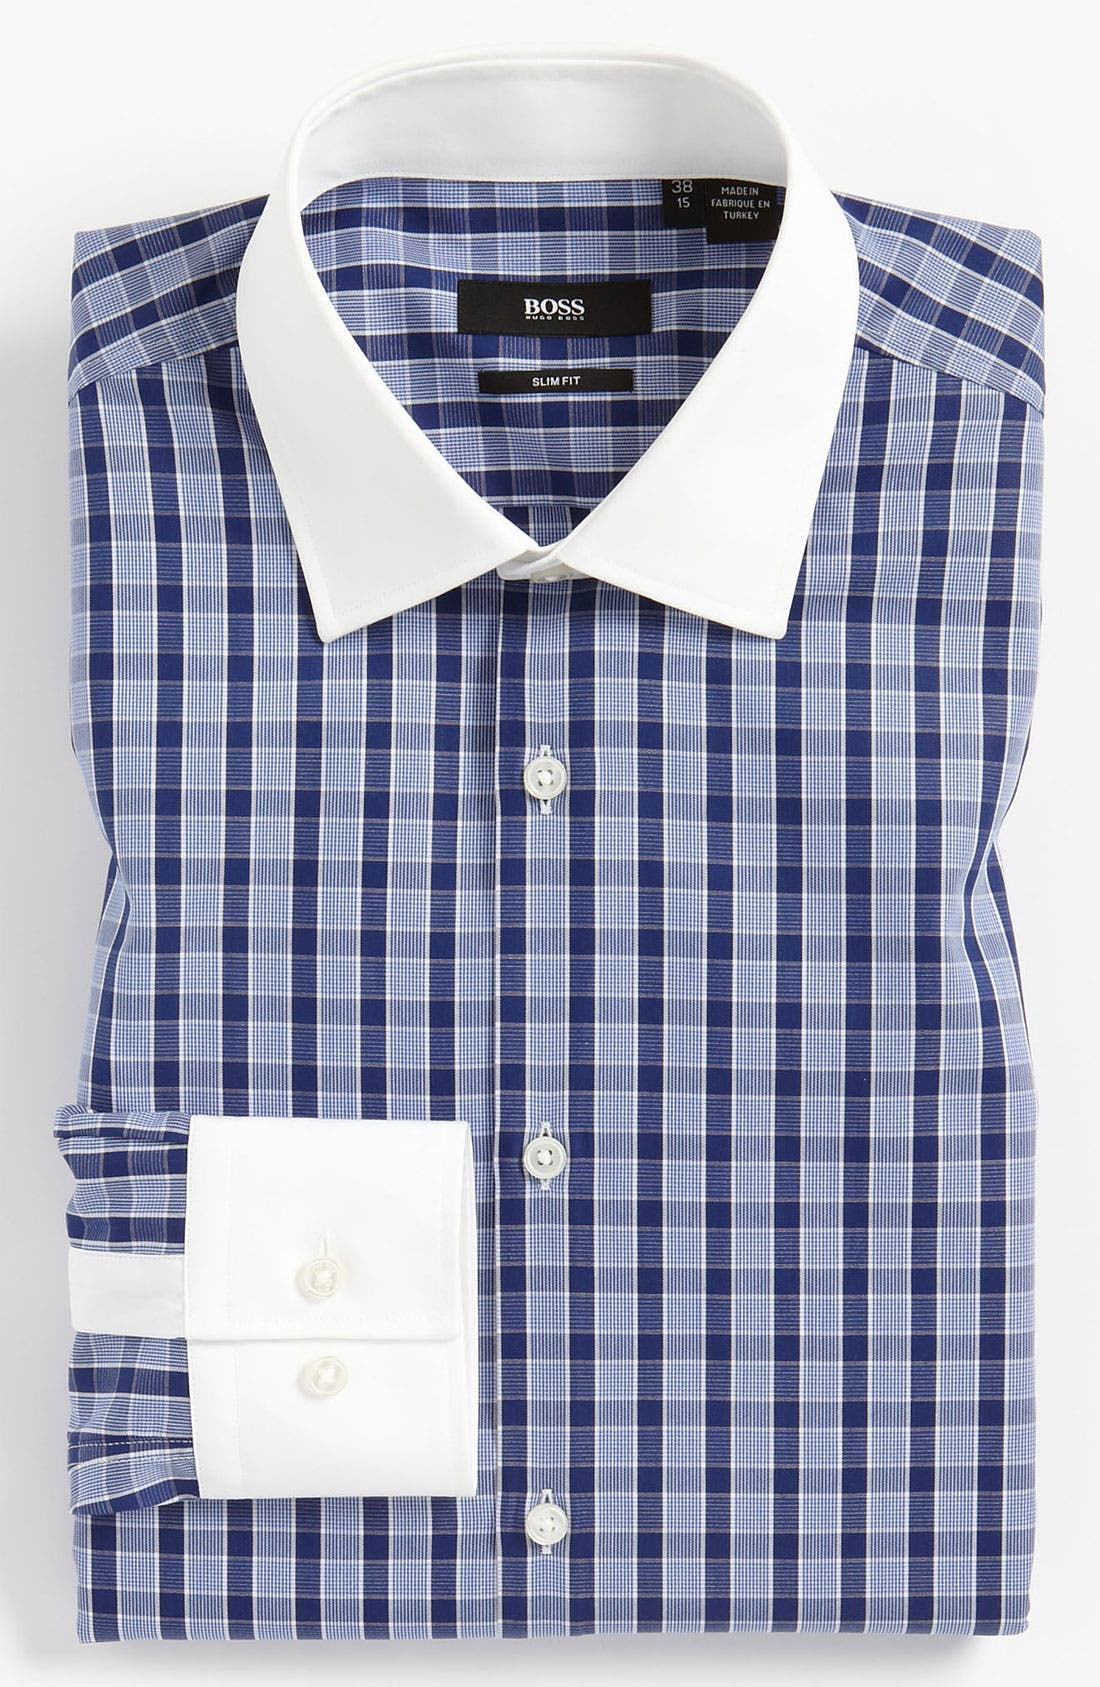 Alternate Image 1 Selected - BOSS Black Slim Fit Dress Shirt